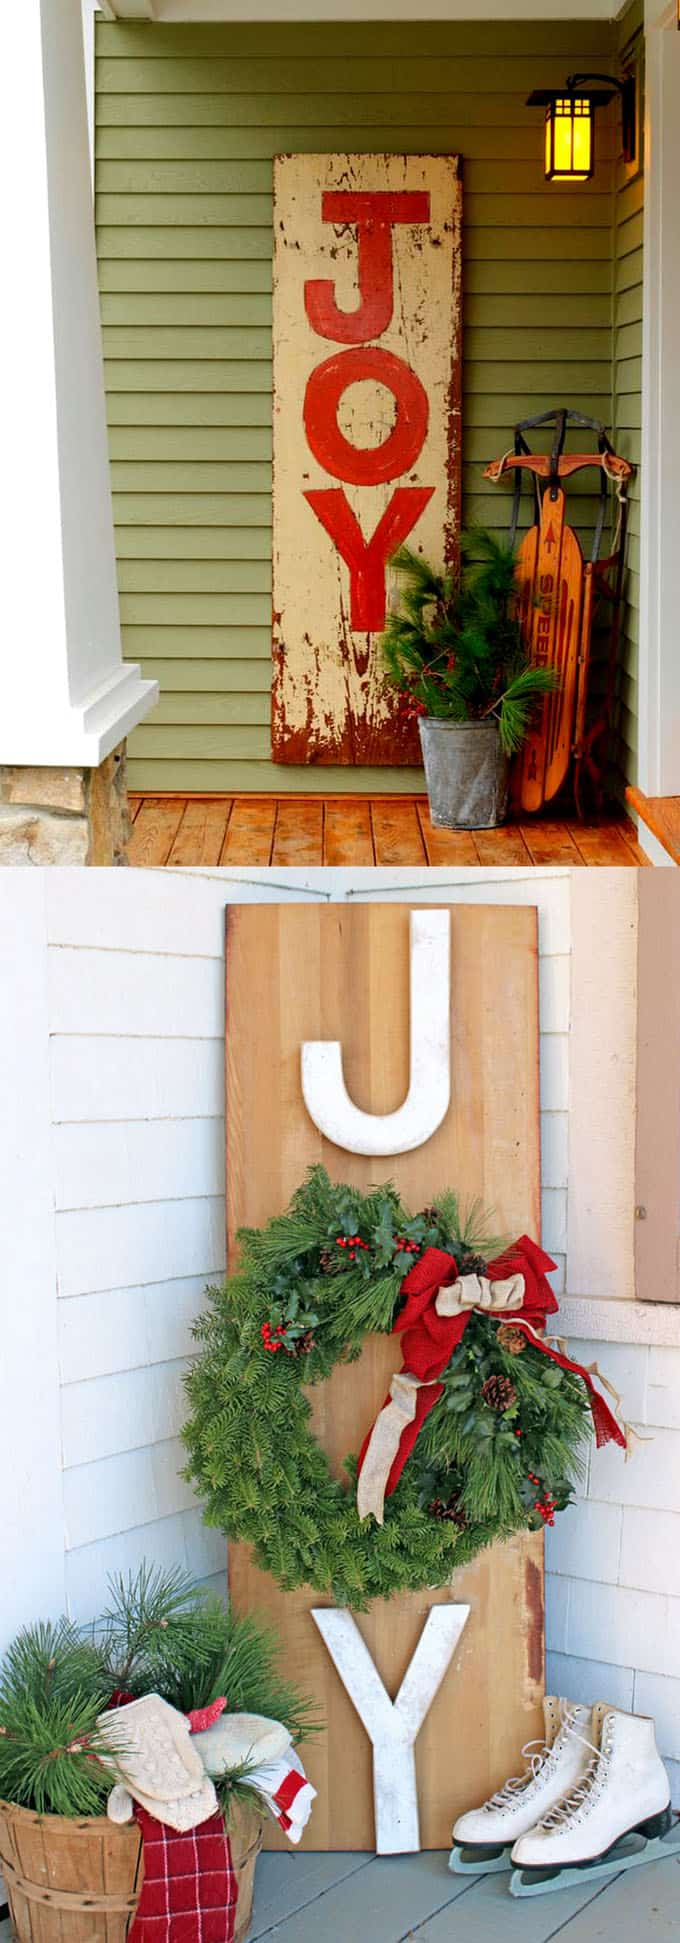 Painted wood signs in outdoor Christmas decorations & Gorgeous Outdoor Christmas Decorations: 32 Best Ideas u0026 Tutorials ...